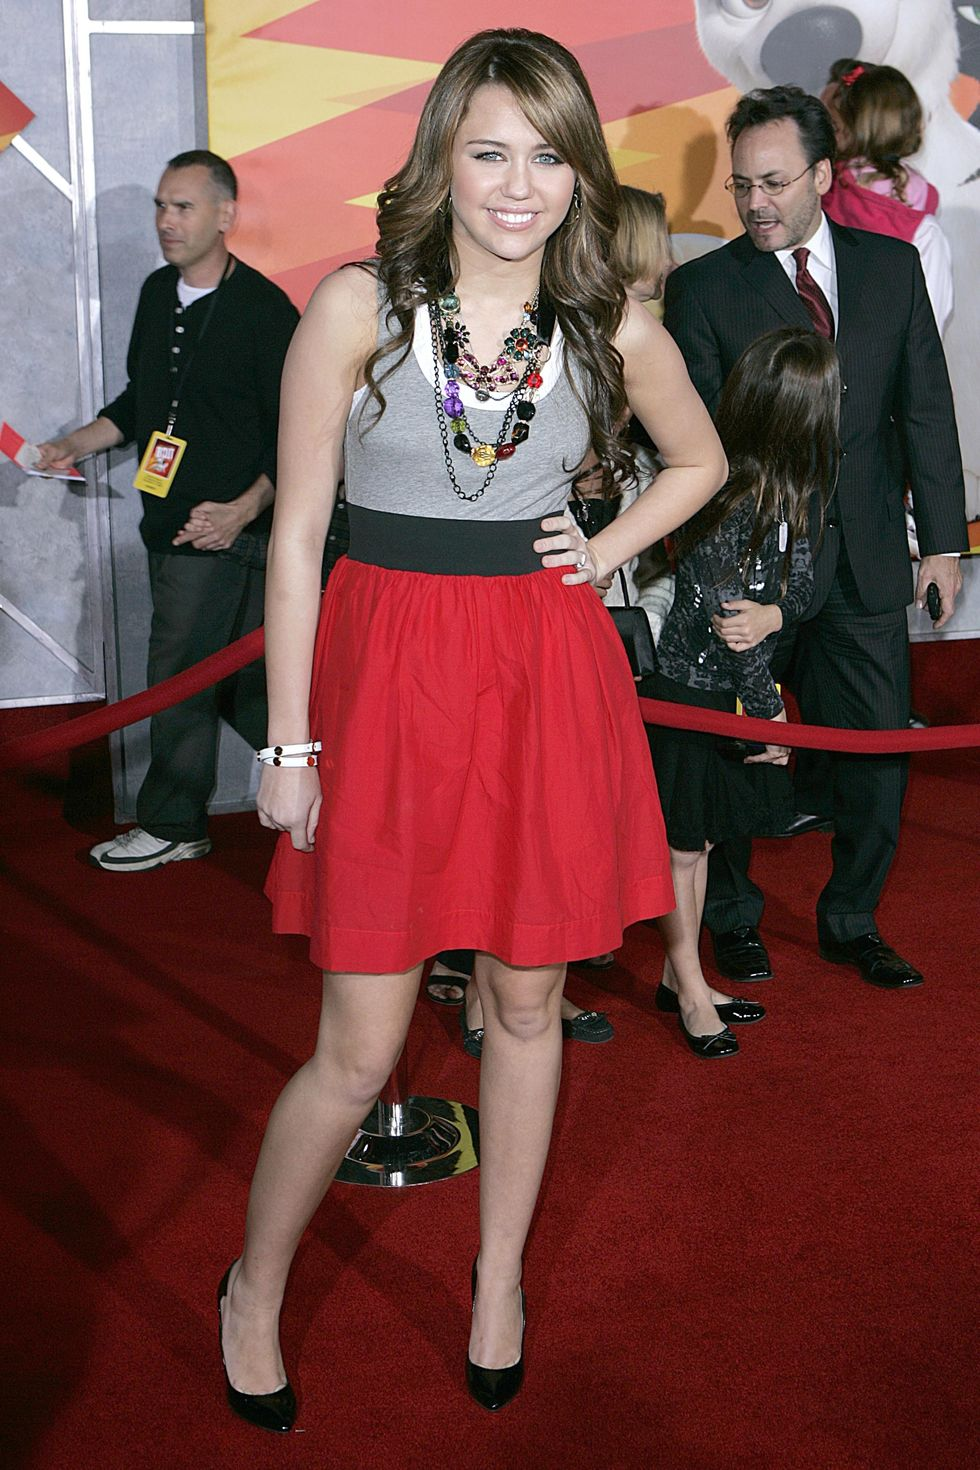 miley-cyrus-bolt-premiere-in-los-angeles-01